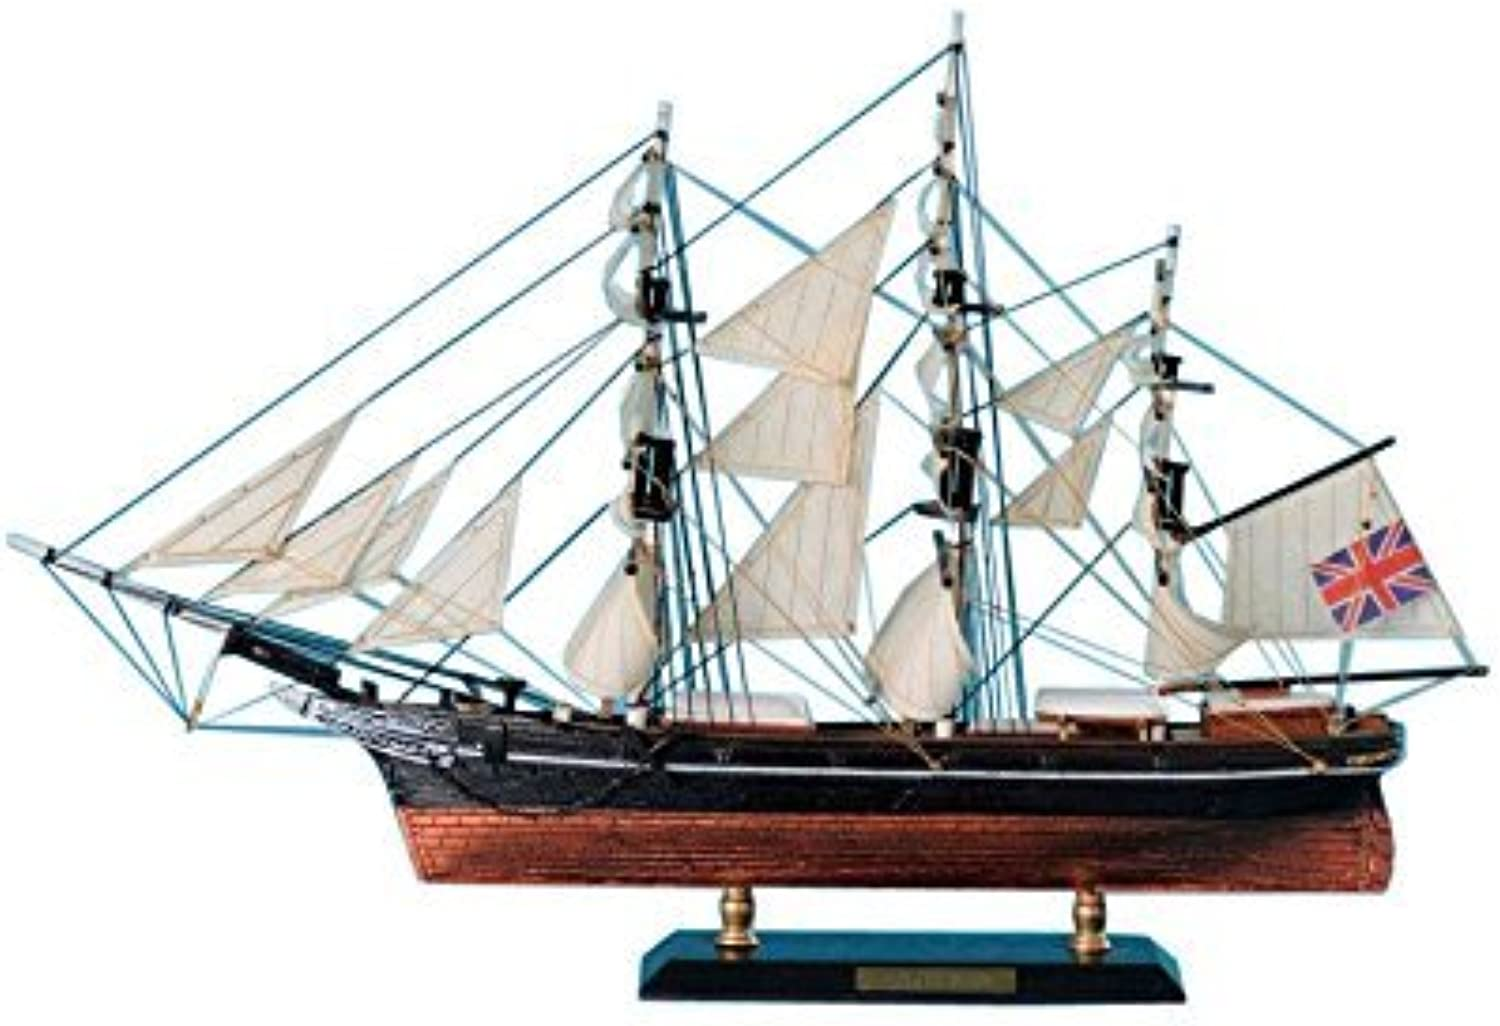 Star of India Limited 15 - Wood Tall Ship Model - Decorative Wooden Boat - Nautical by Handcrafted Model Ships